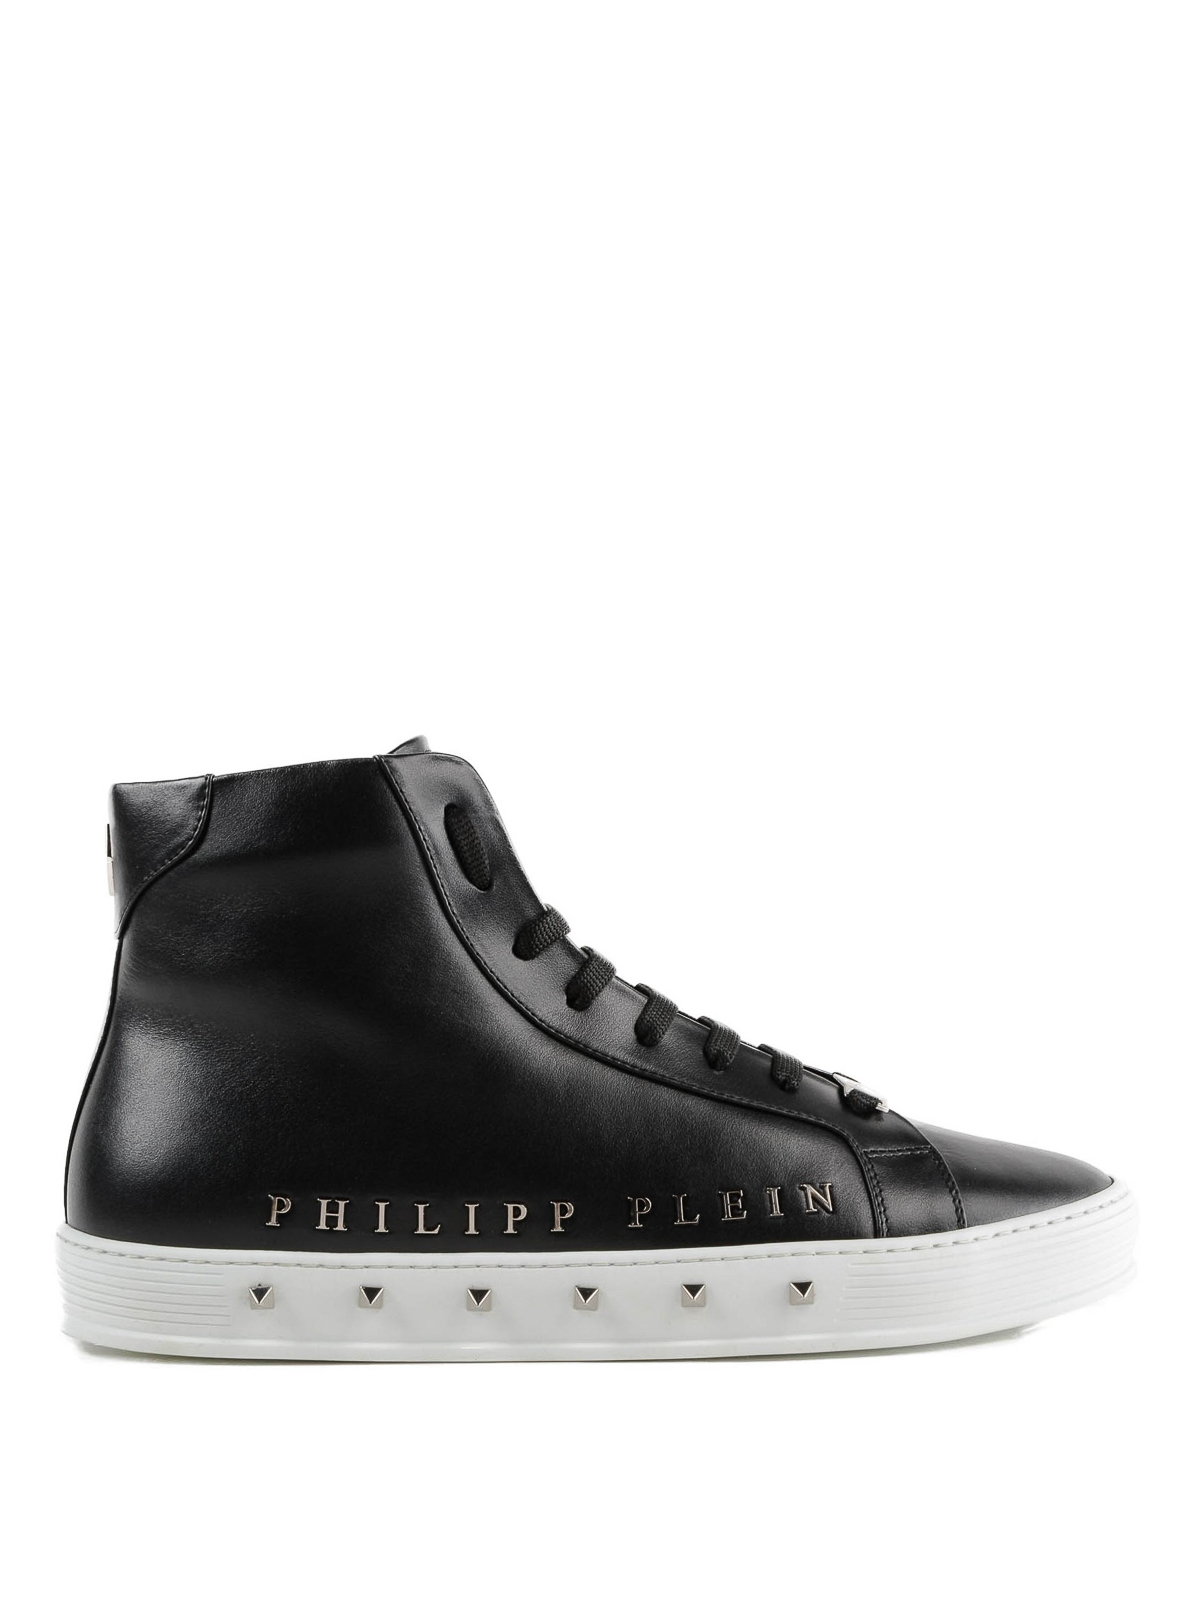 f8d69af731c14c Philipp Plein - Sneaker alte nere Good Time in pelle - sneakers ...